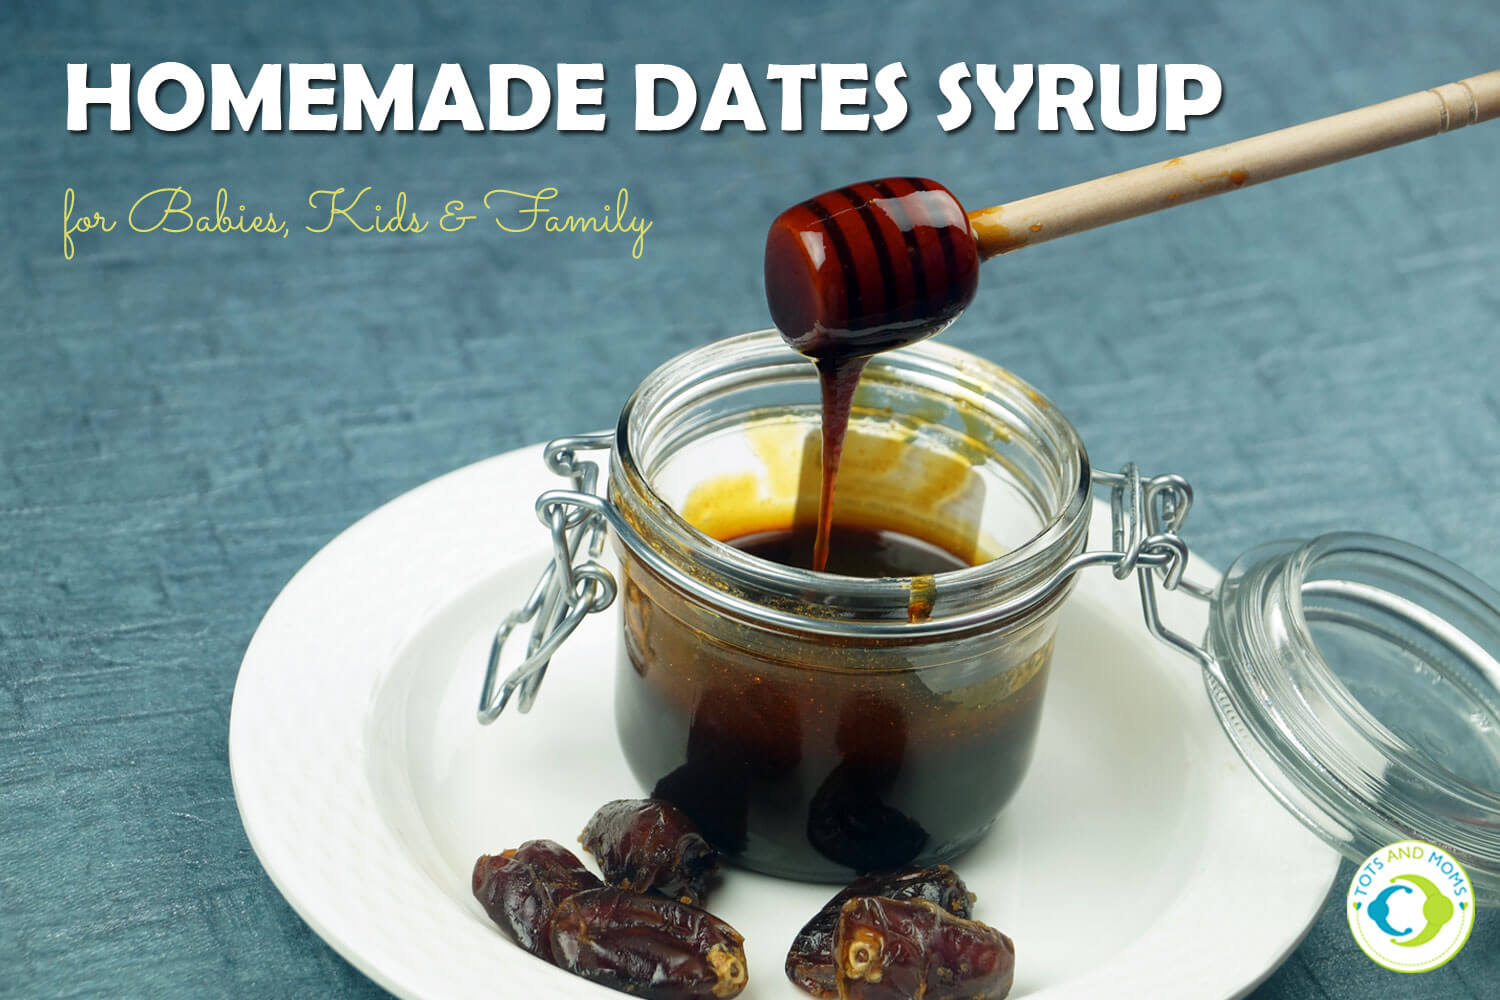 DATES SYRUP for Toddlers, Kids & Family at home